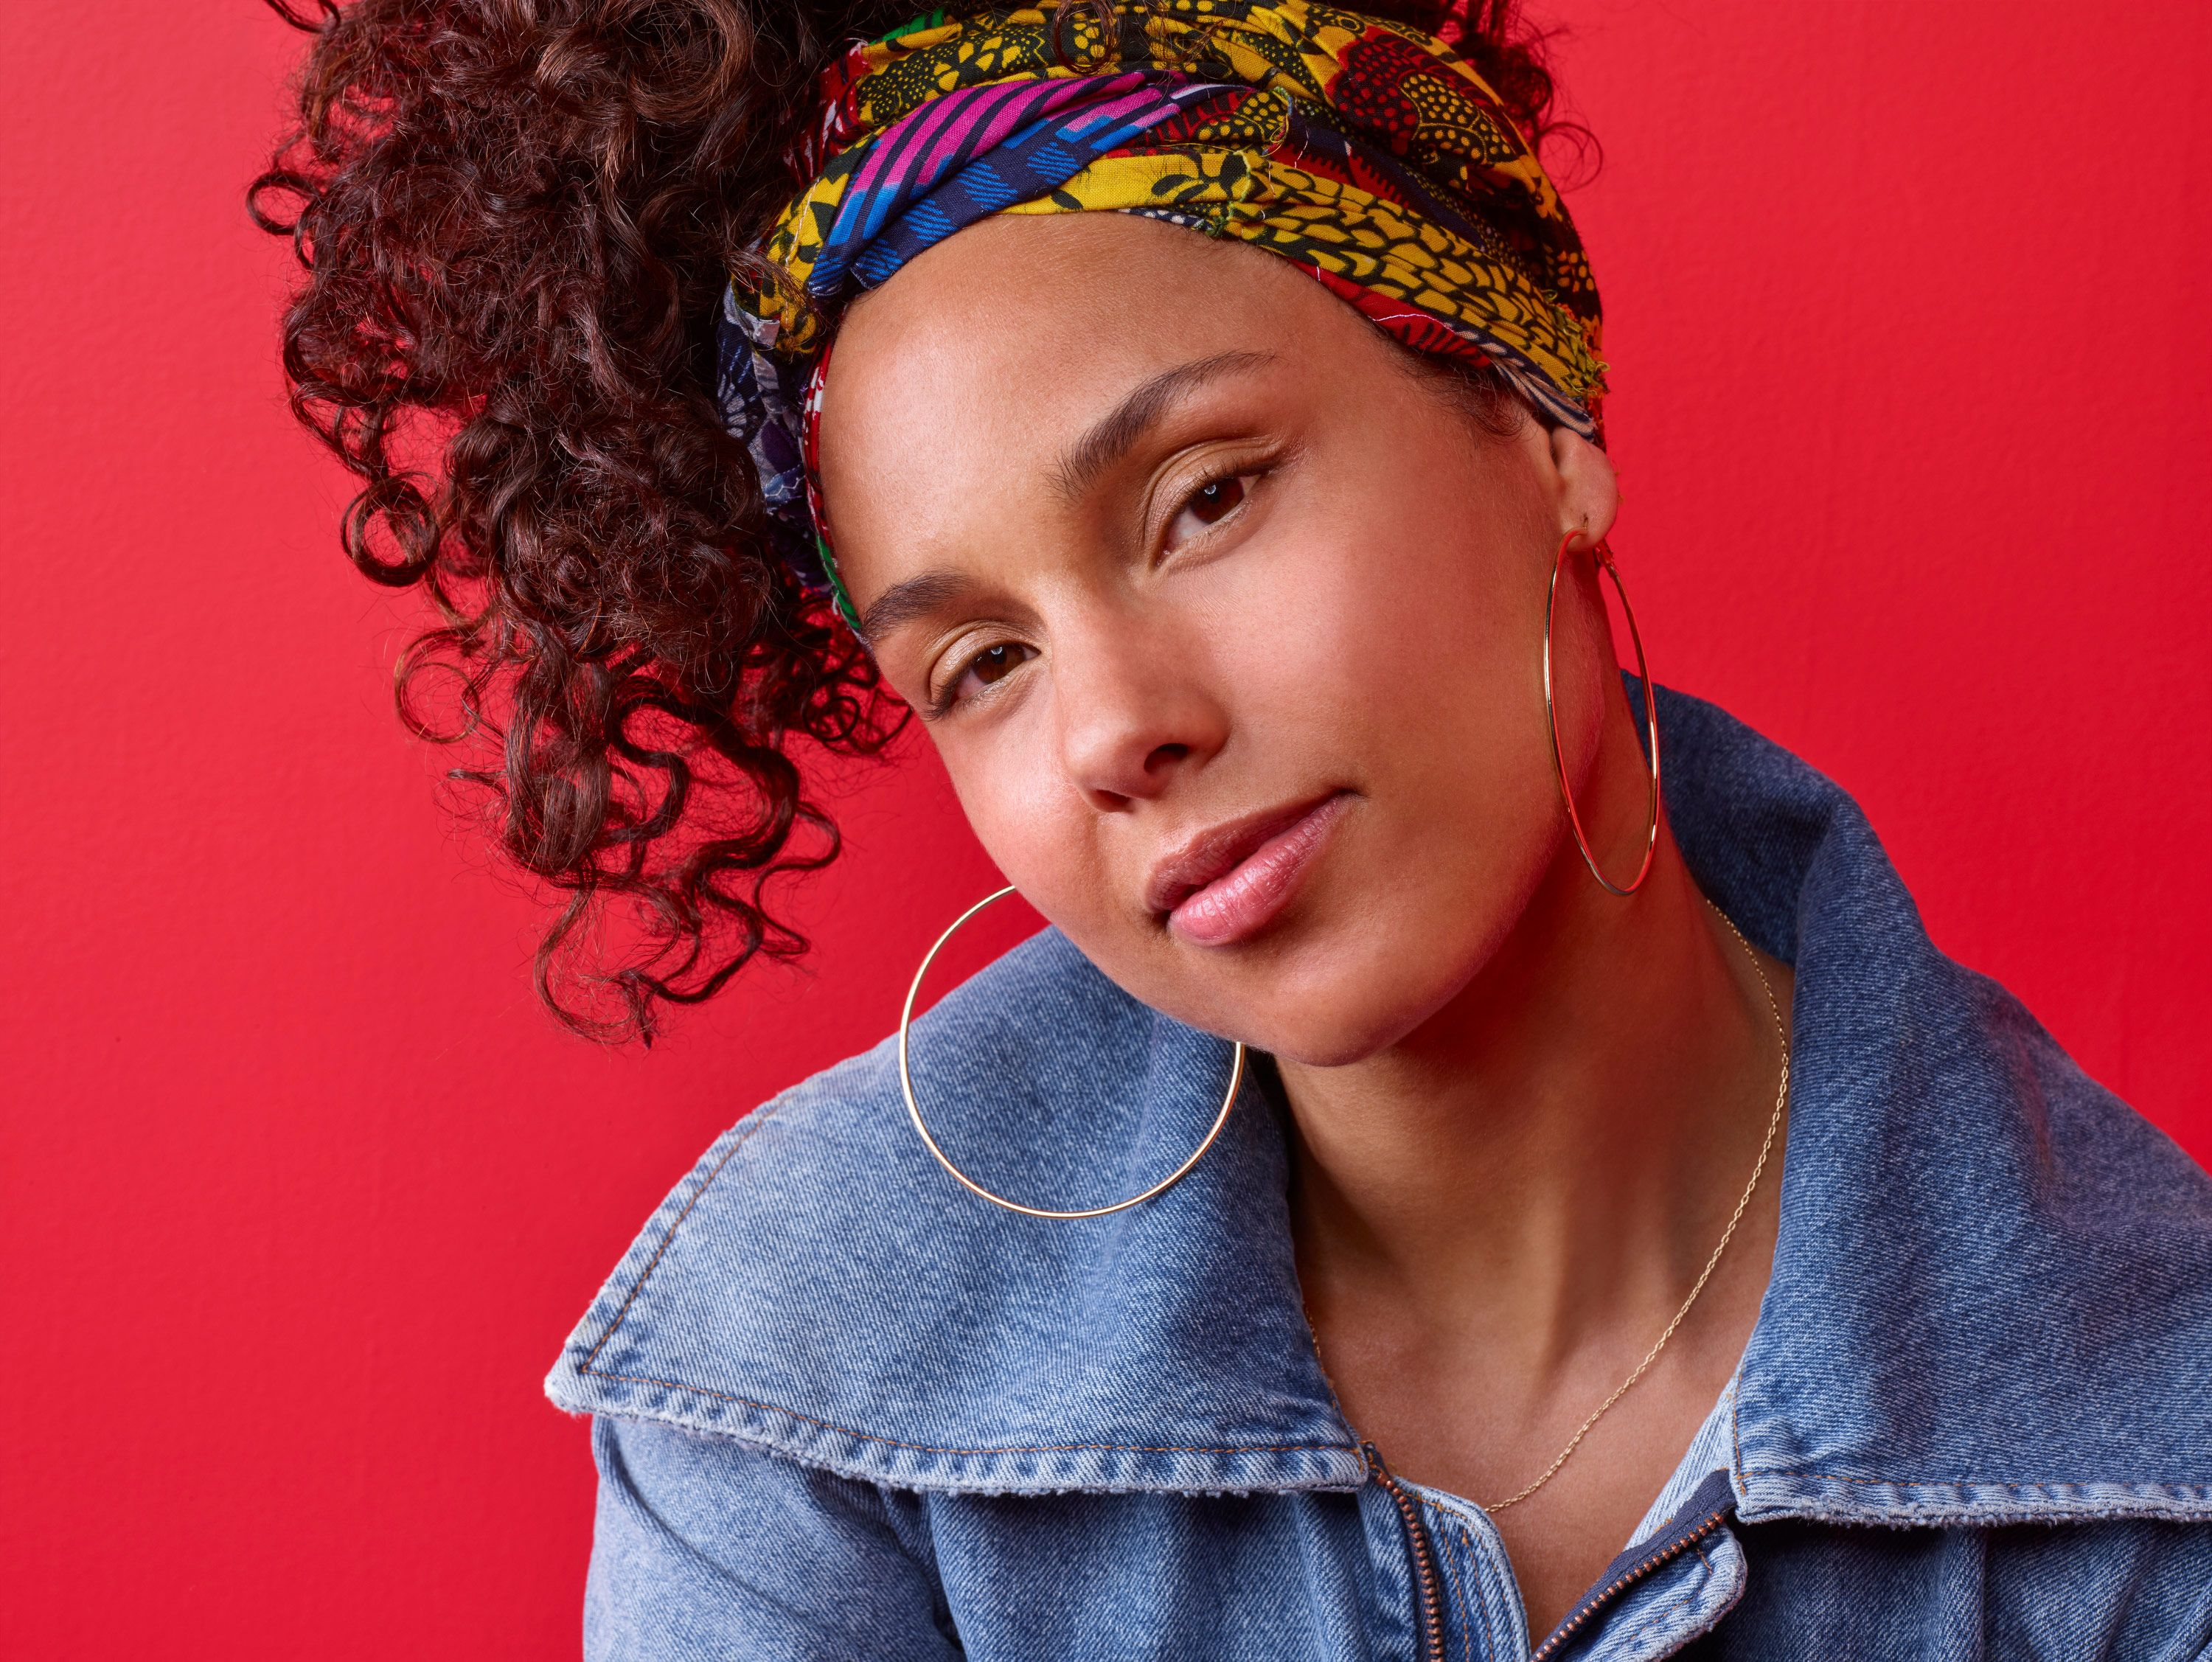 Pictures Alicia Keys nudes (15 photo), Topless, Fappening, Instagram, legs 2006